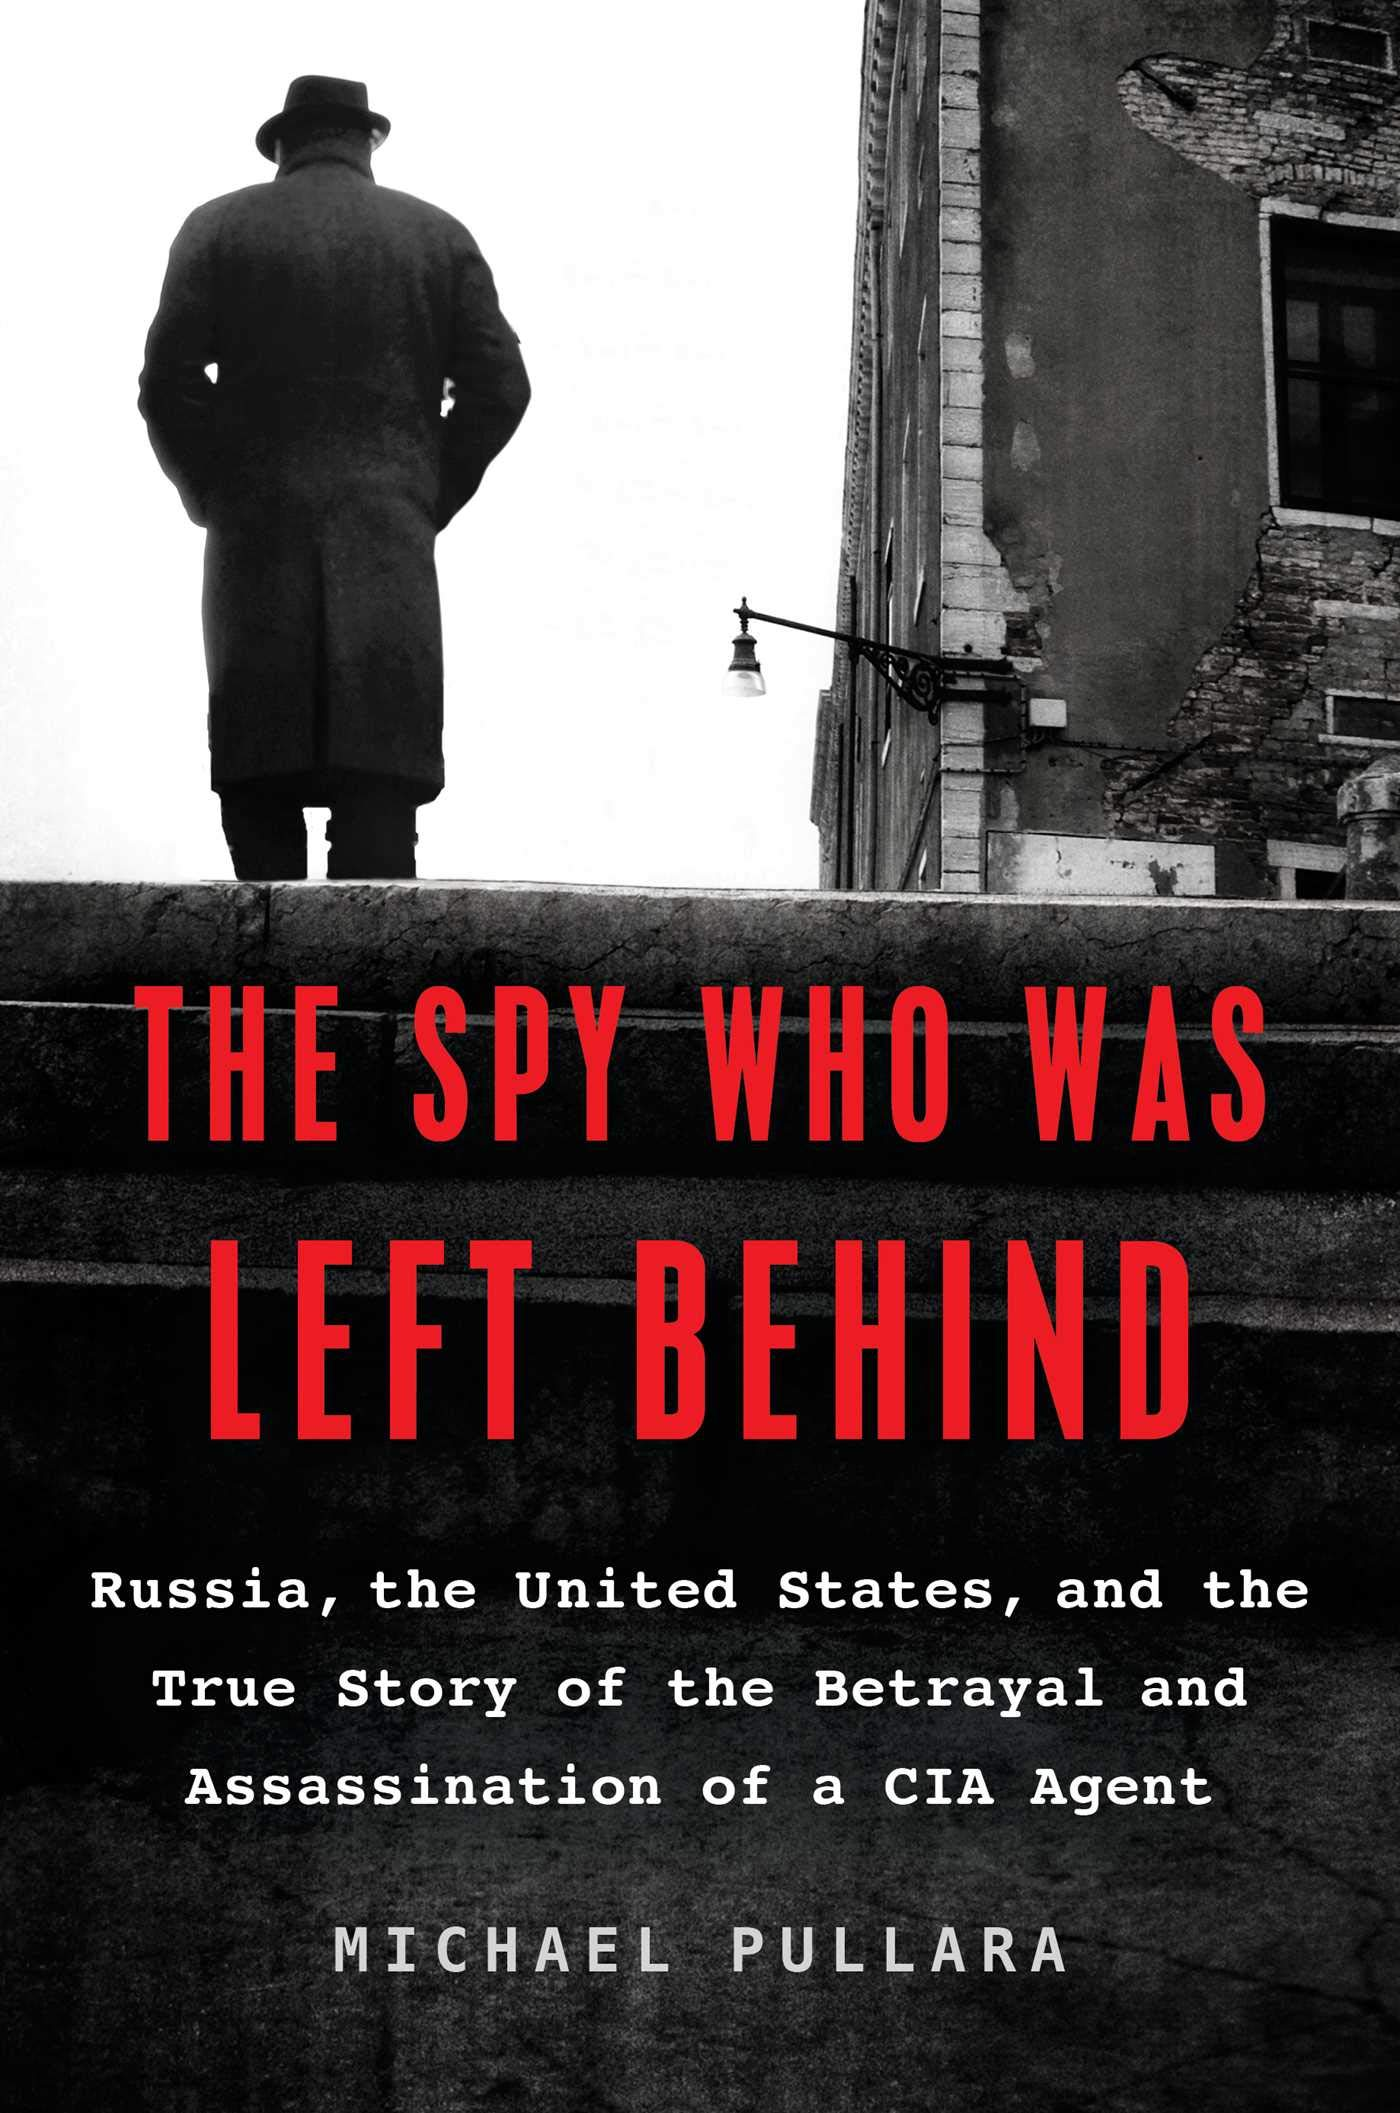 The Spy Who Was Left Behind: Russia, the United States, and the True Story of the Betrayal and Assassination of a CIA Agent by Michael Pullara